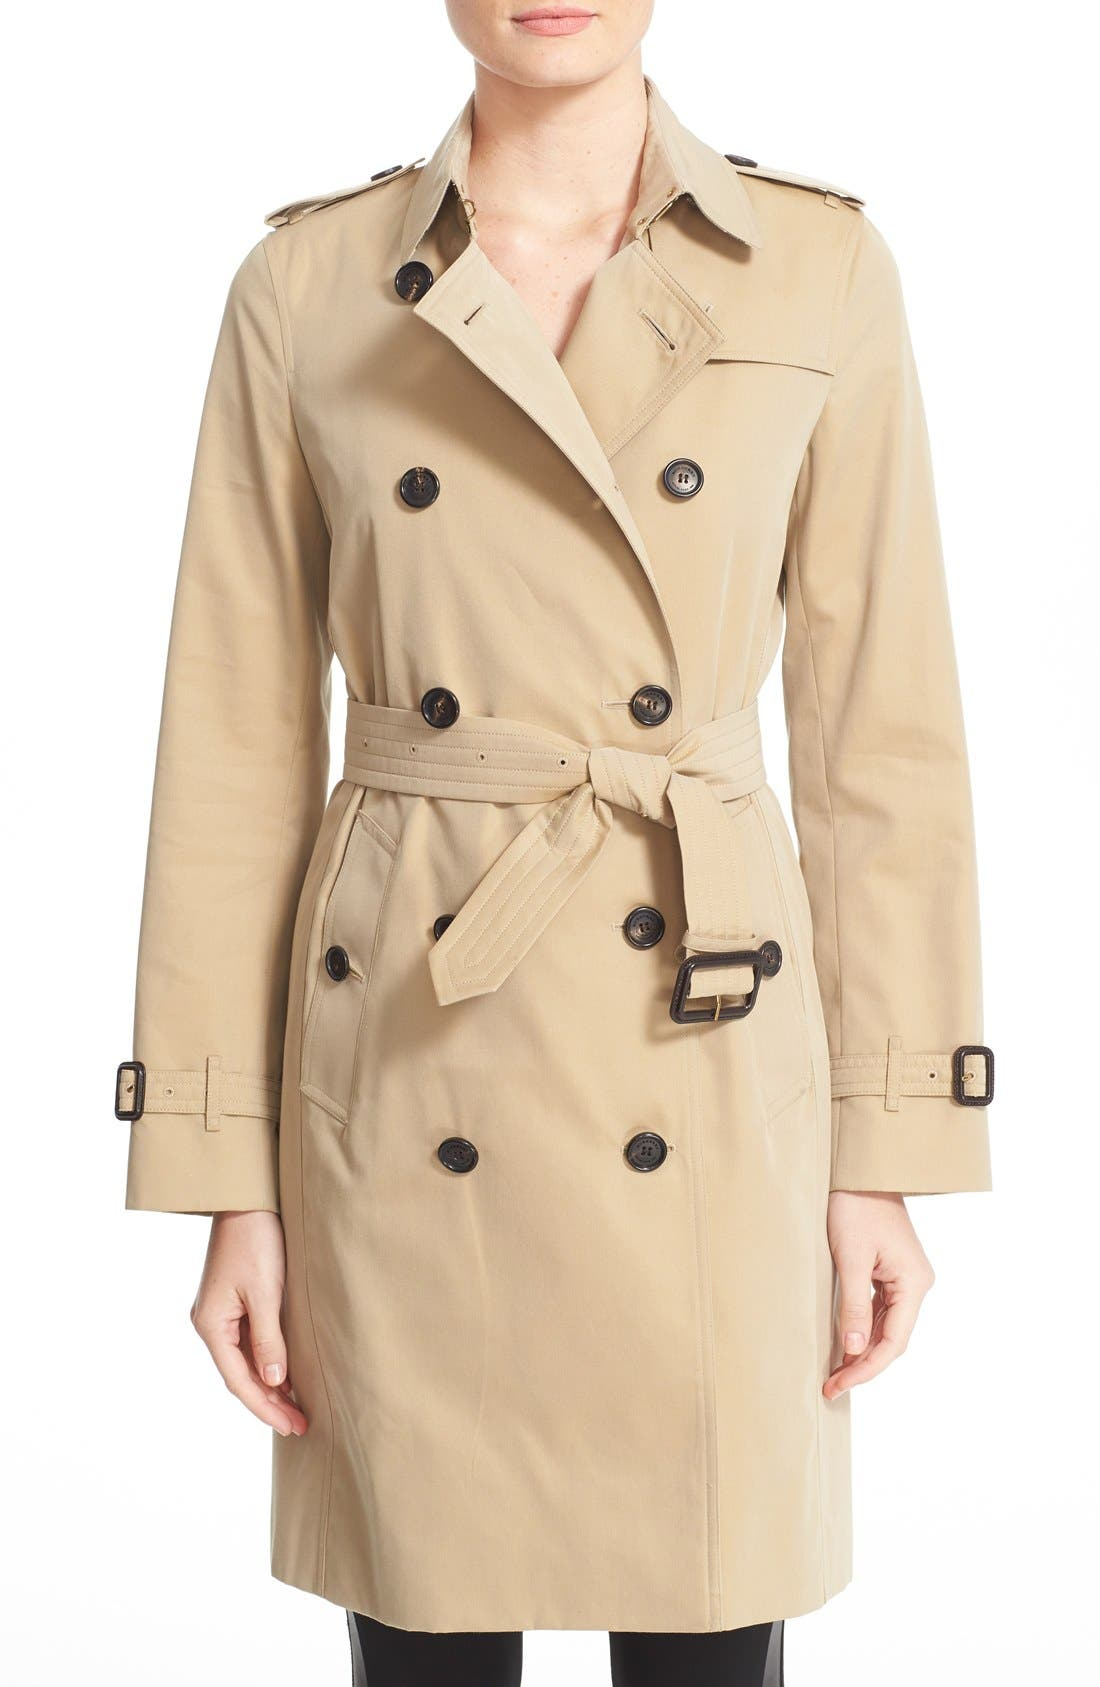 Kensington Long Trench Coat,                             Main thumbnail 1, color,                             HONEY